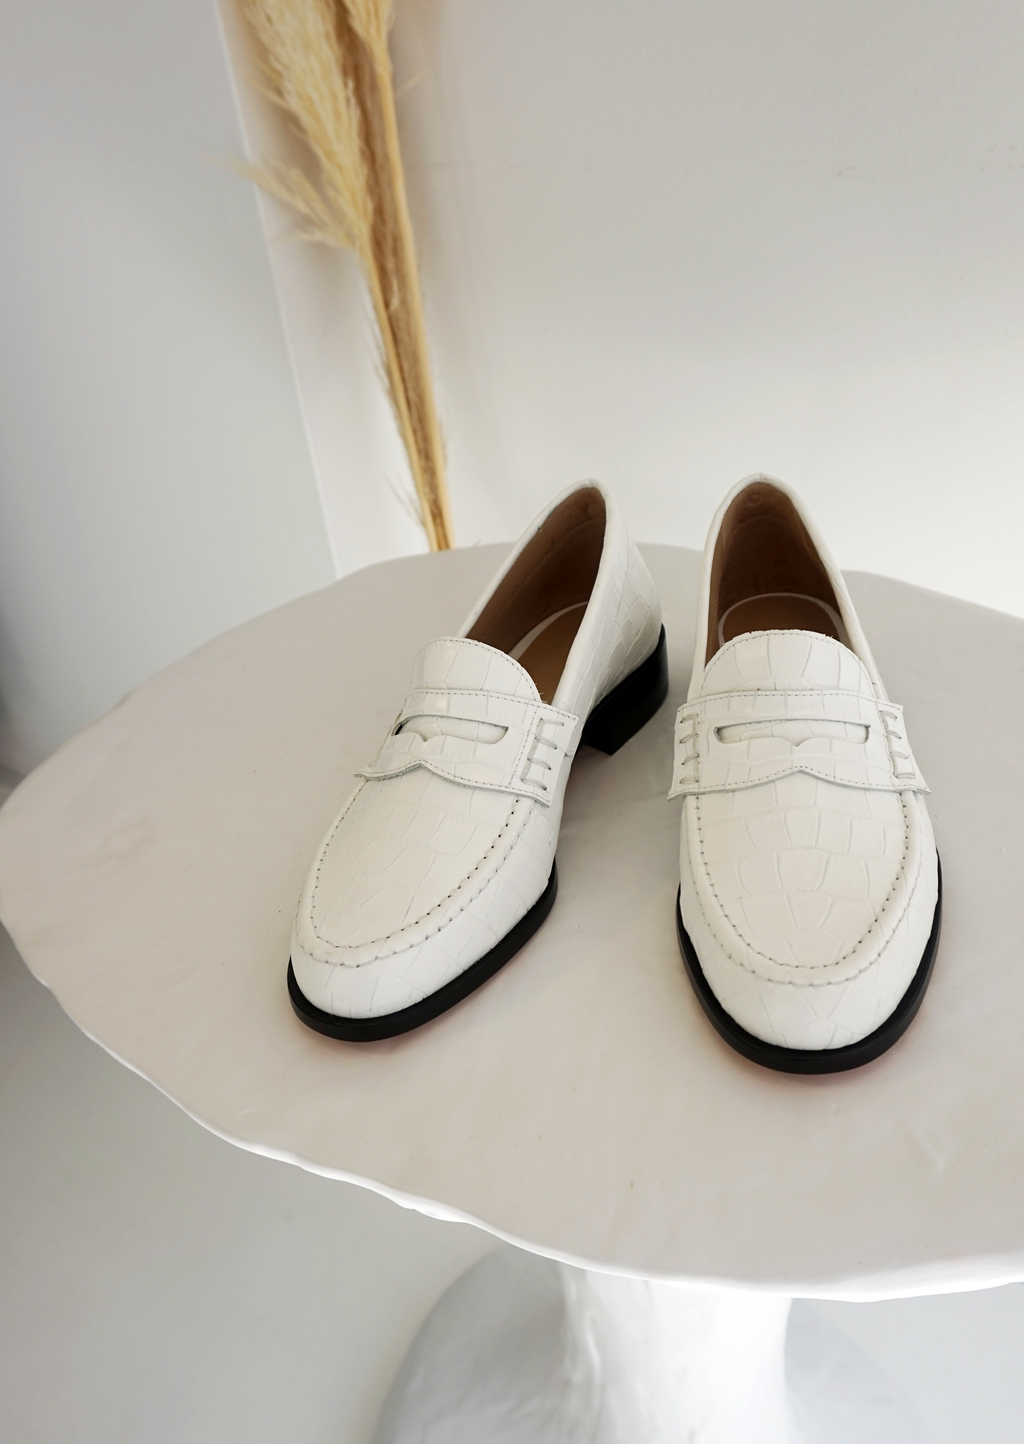 Maryam Nassir Zadeh Suffolk Loafer - White Croc